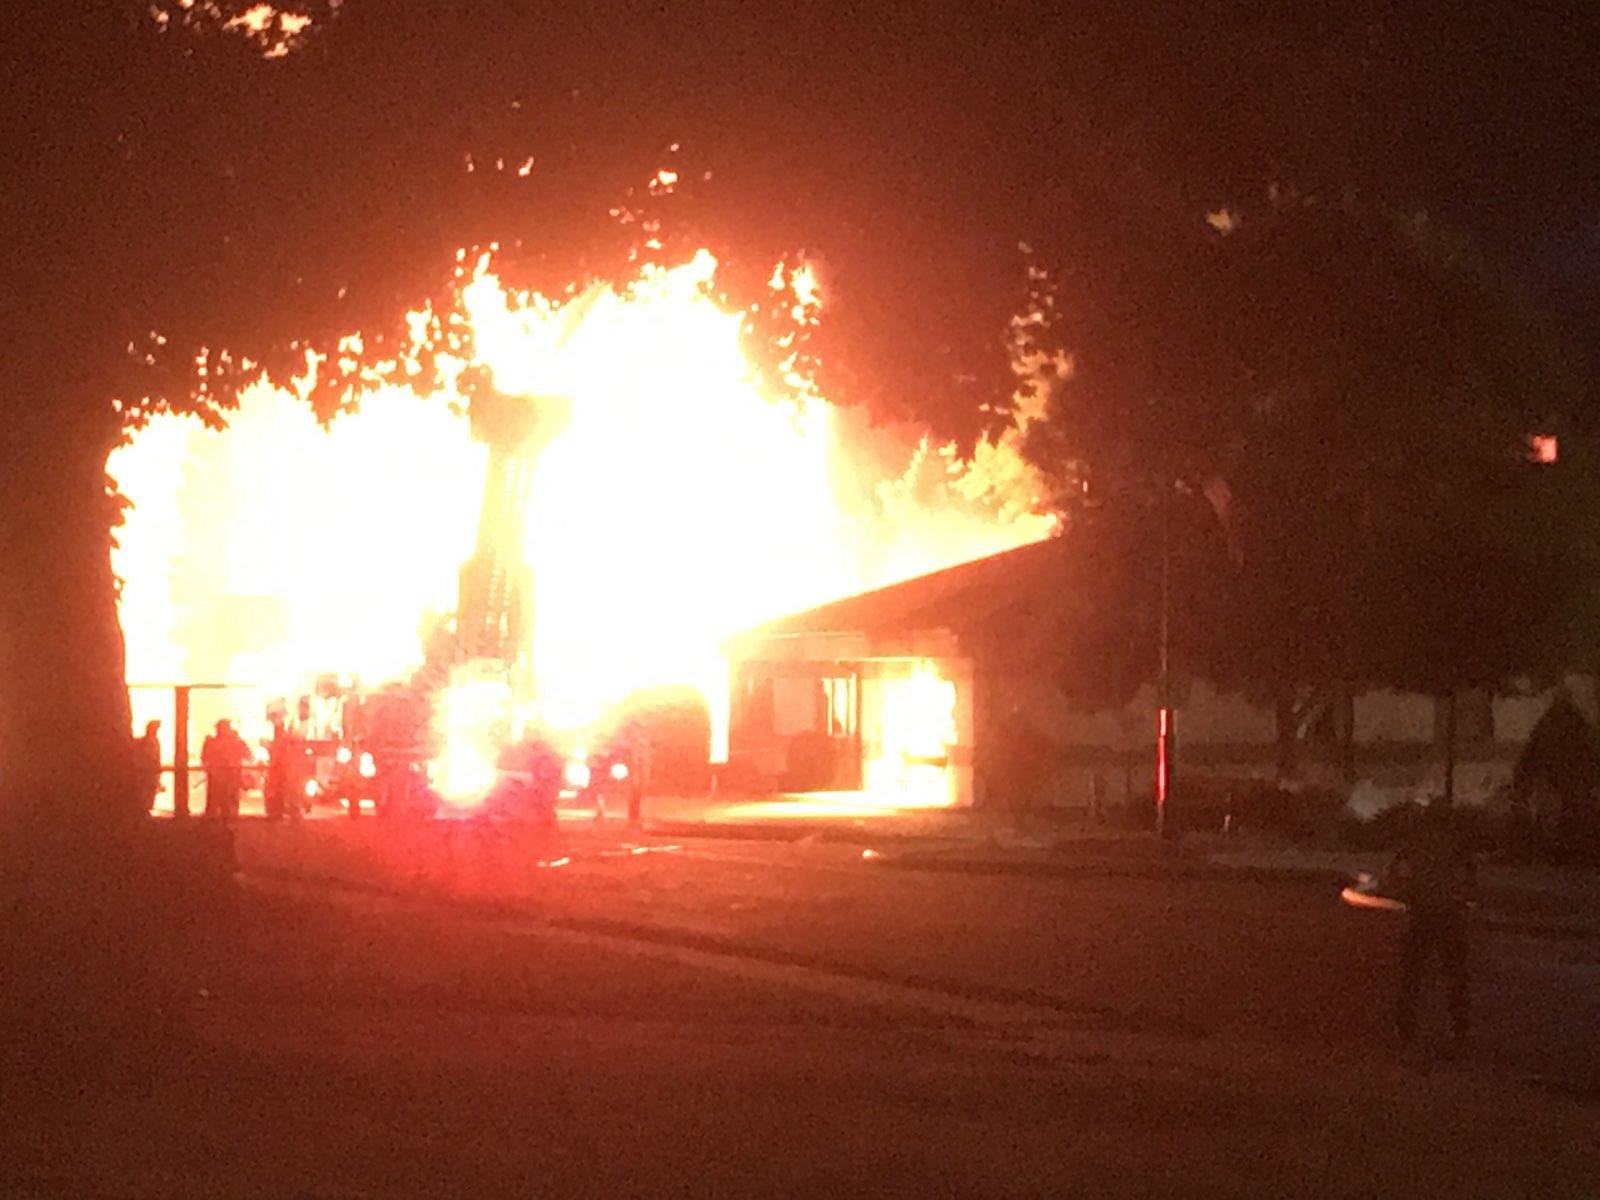 Joseph Powelka house on W. Main St in Sun Prairie engulfed in flames after a gas explosion downtown.